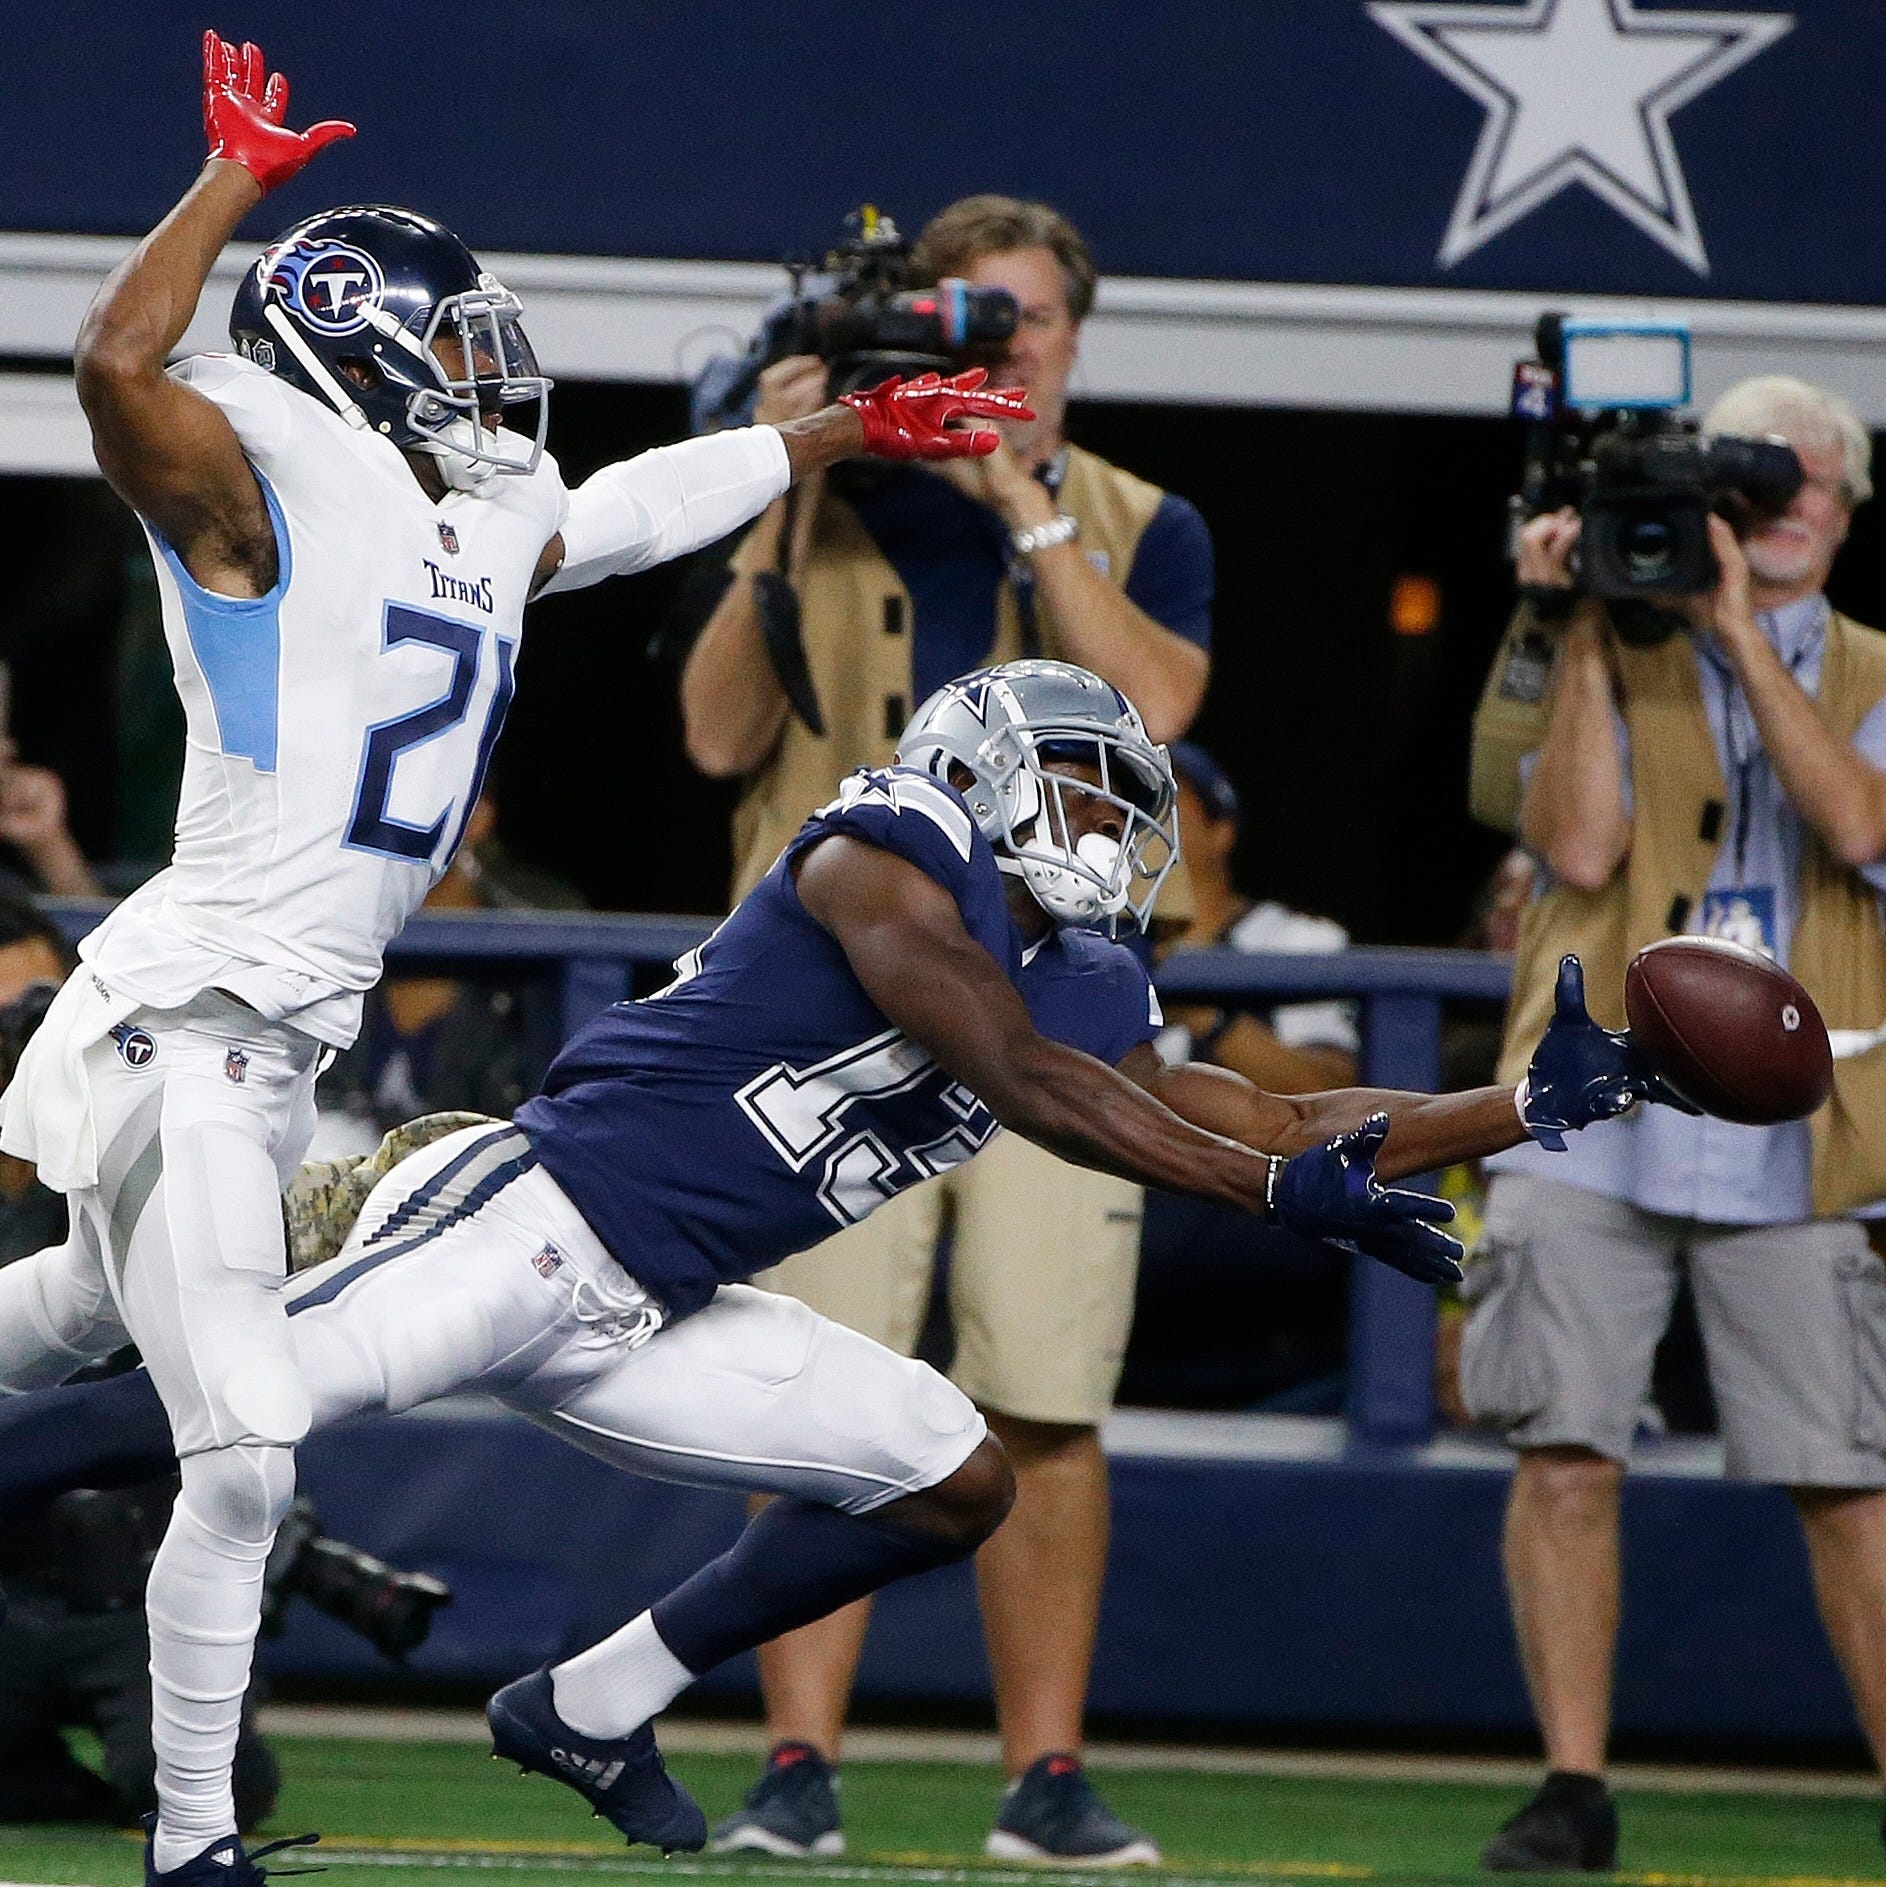 Titans' Butler struggling, now a target in pass defense